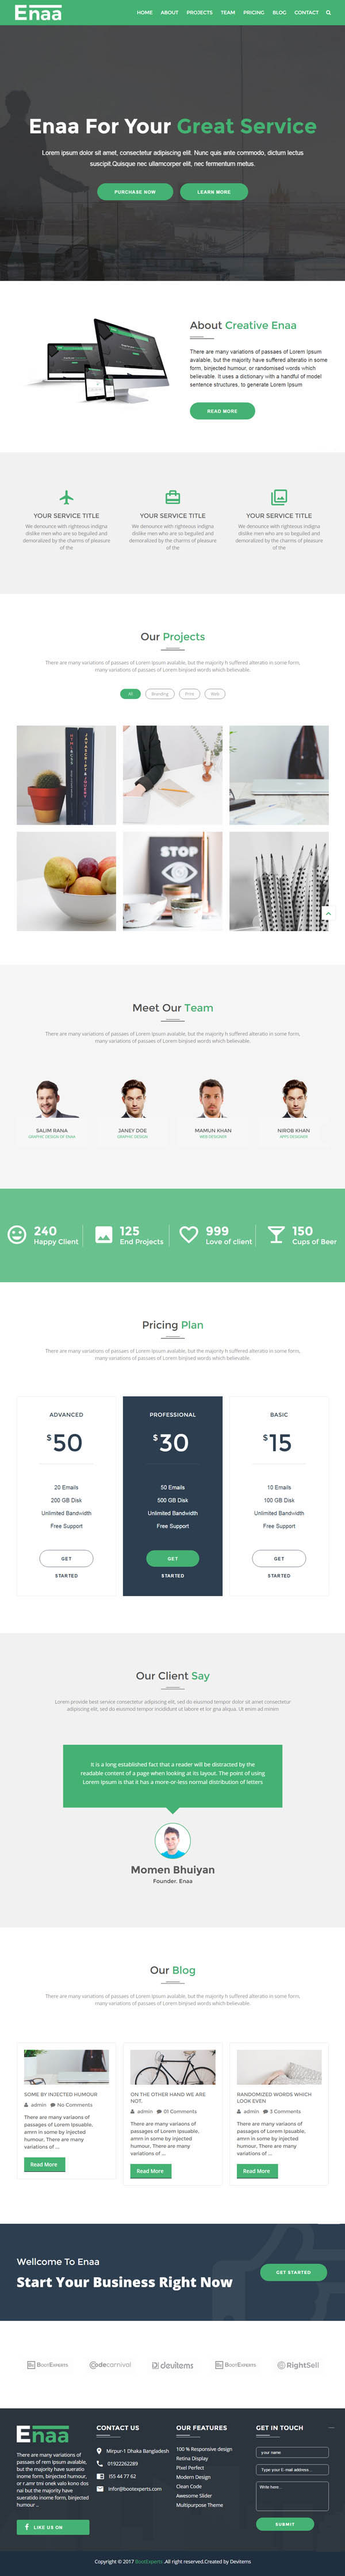 Enaa : One Page Corporate WordPress Theme